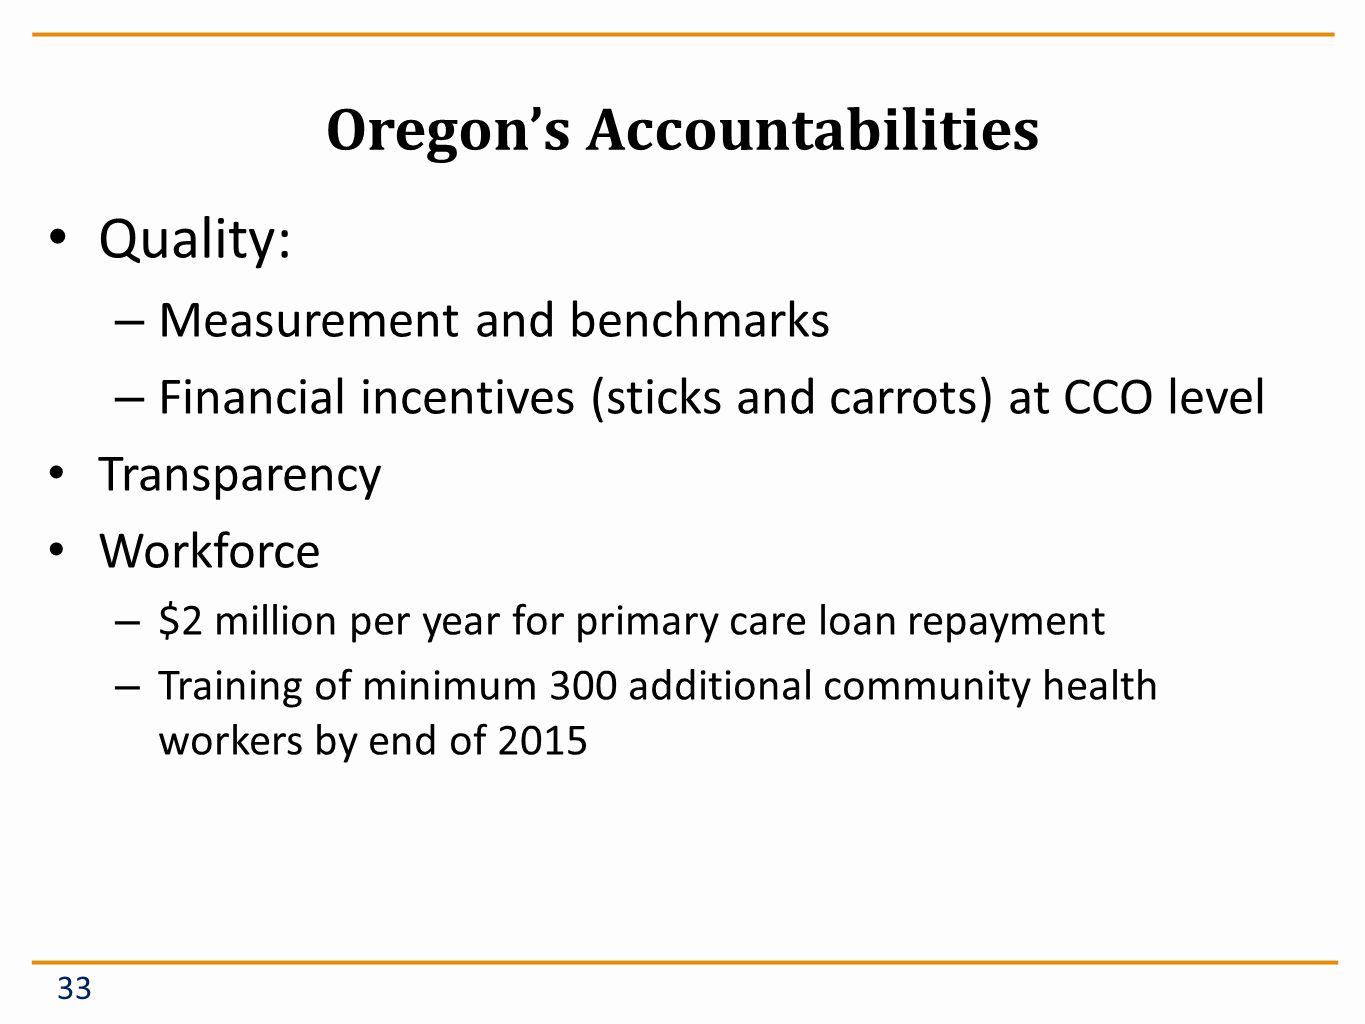 Oregons Accountabilities Quality: – Measurement and benchmarks – Financial incentives (sticks and carrots) at CCO level Transparency Workforce – $2 million per year for primary care loan repayment – Training of minimum 300 additional community health workers by end of 2015 33